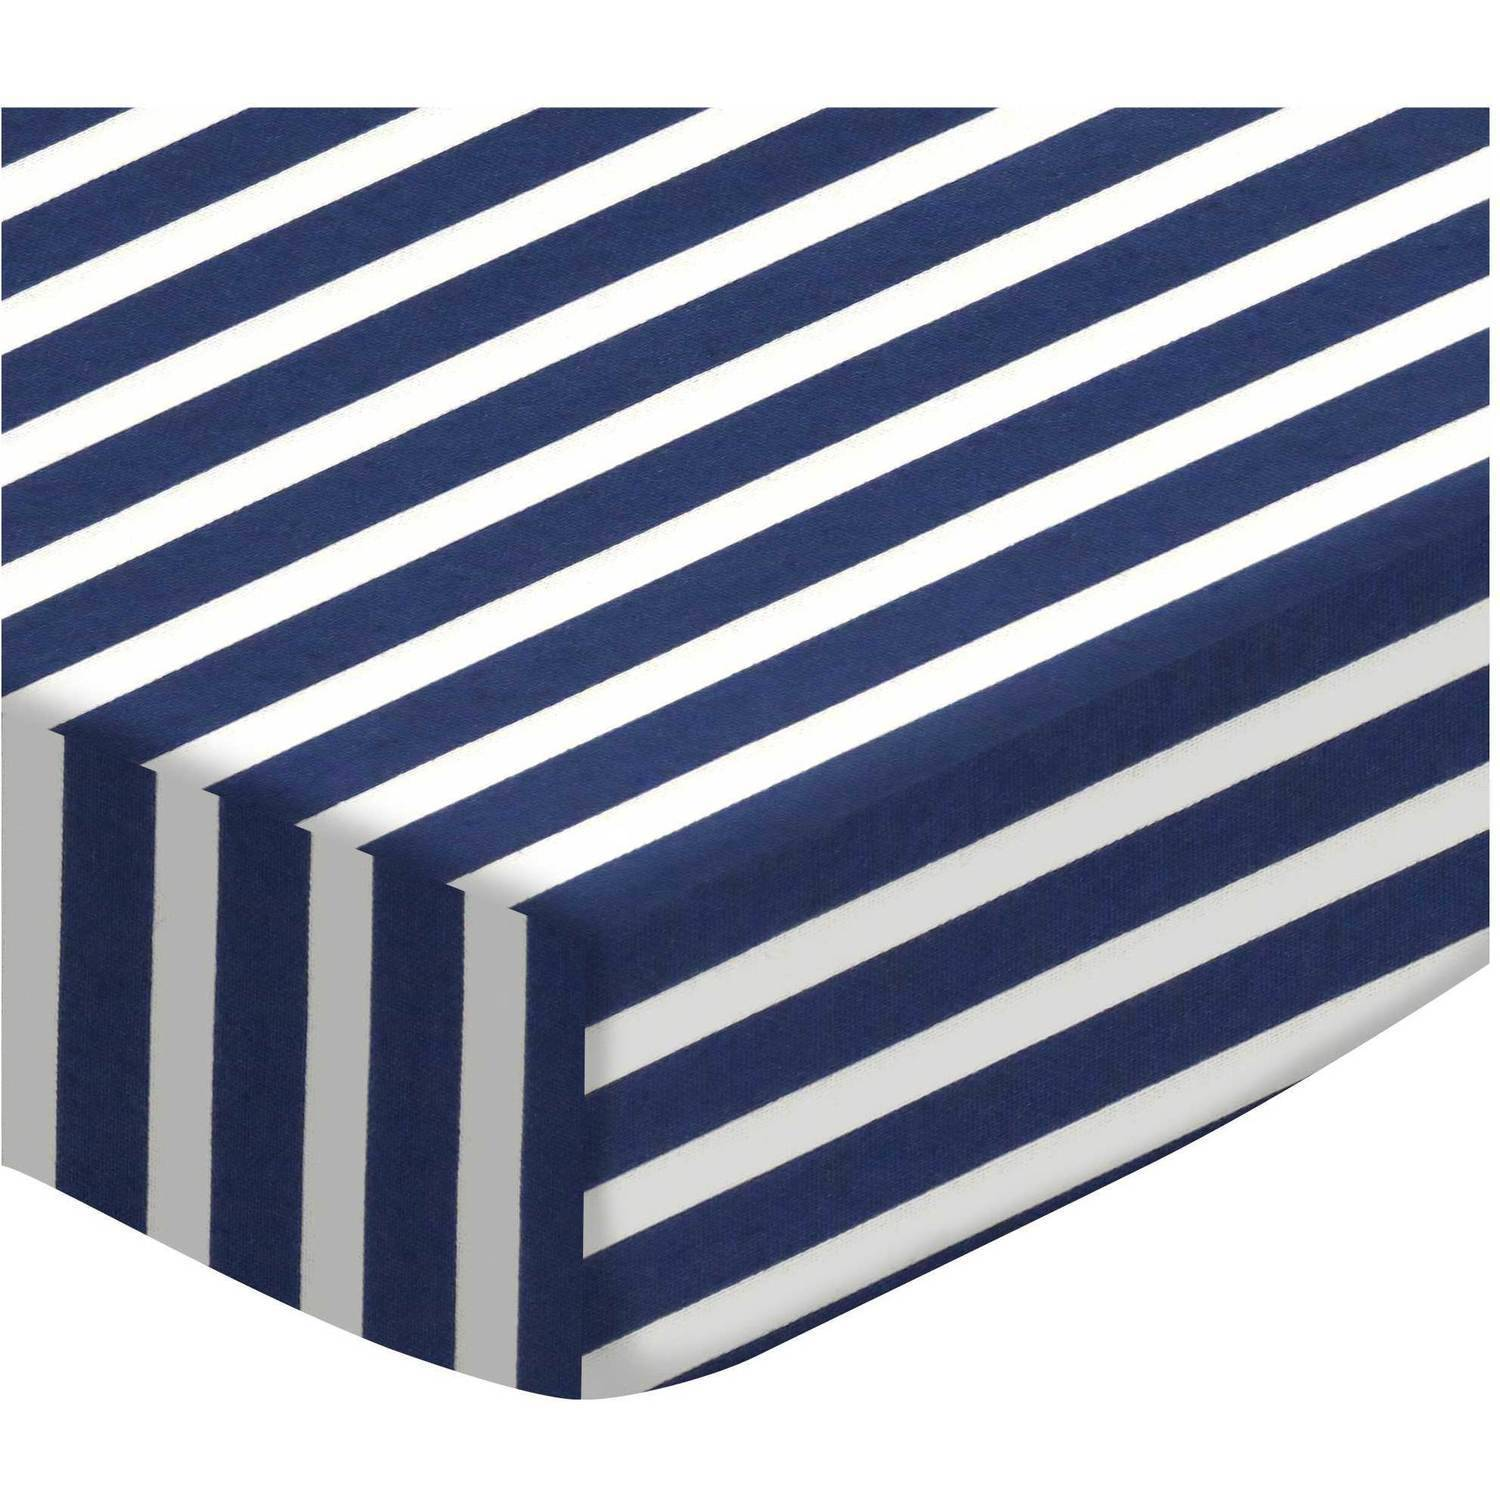 SheetWorld Fitted Crib / Toddler Sheet - Primary Navy Stripe Woven (Choose Your Color)